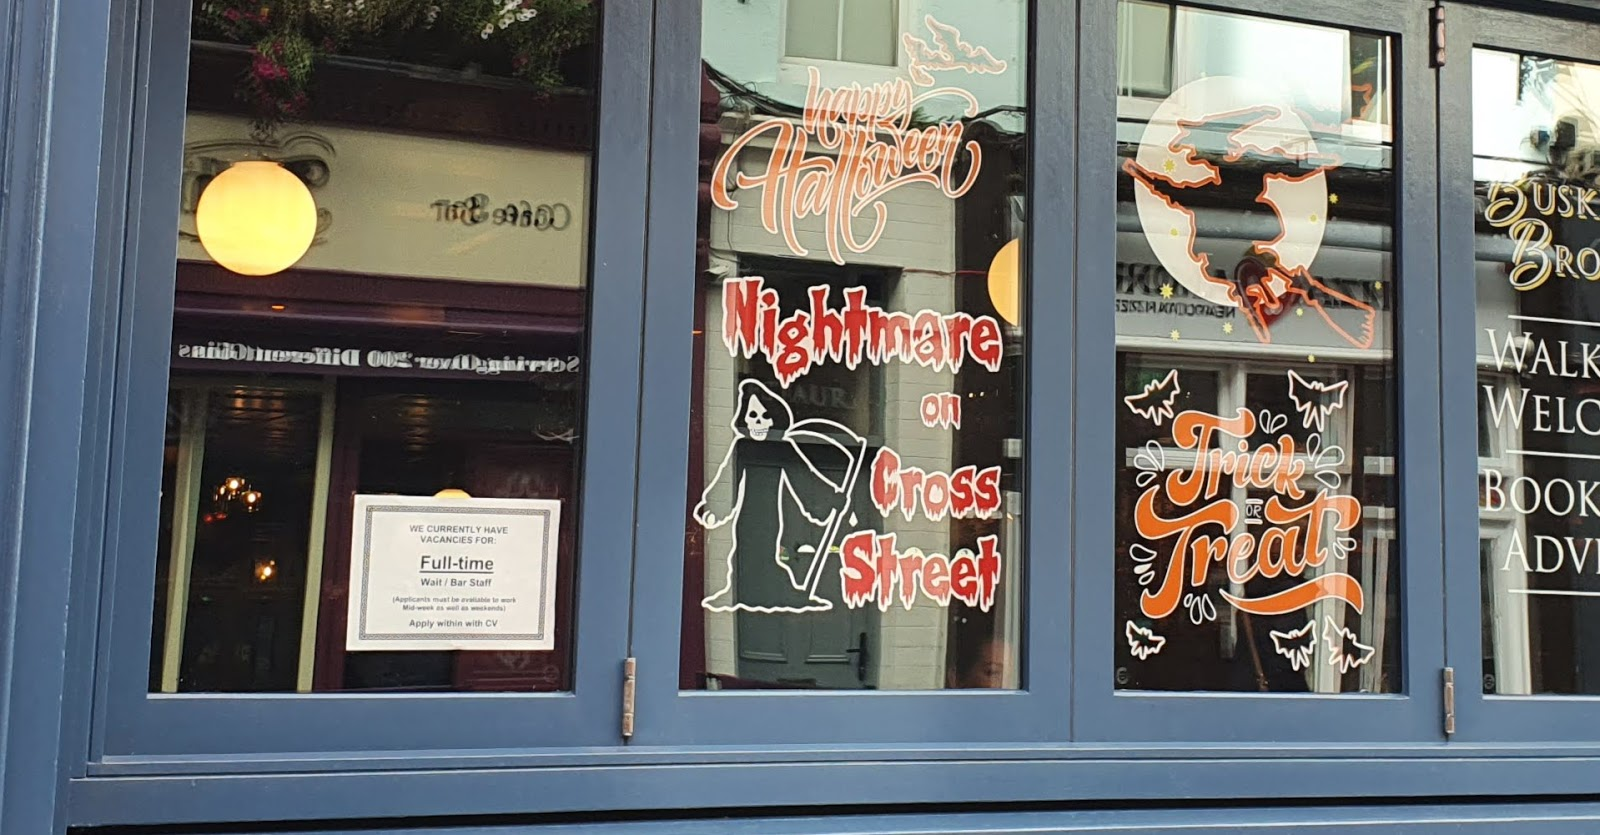 Restaurant window with job ad and Halloweeen decorations including a witch with axe, and captioned Nightmare on Cross Street